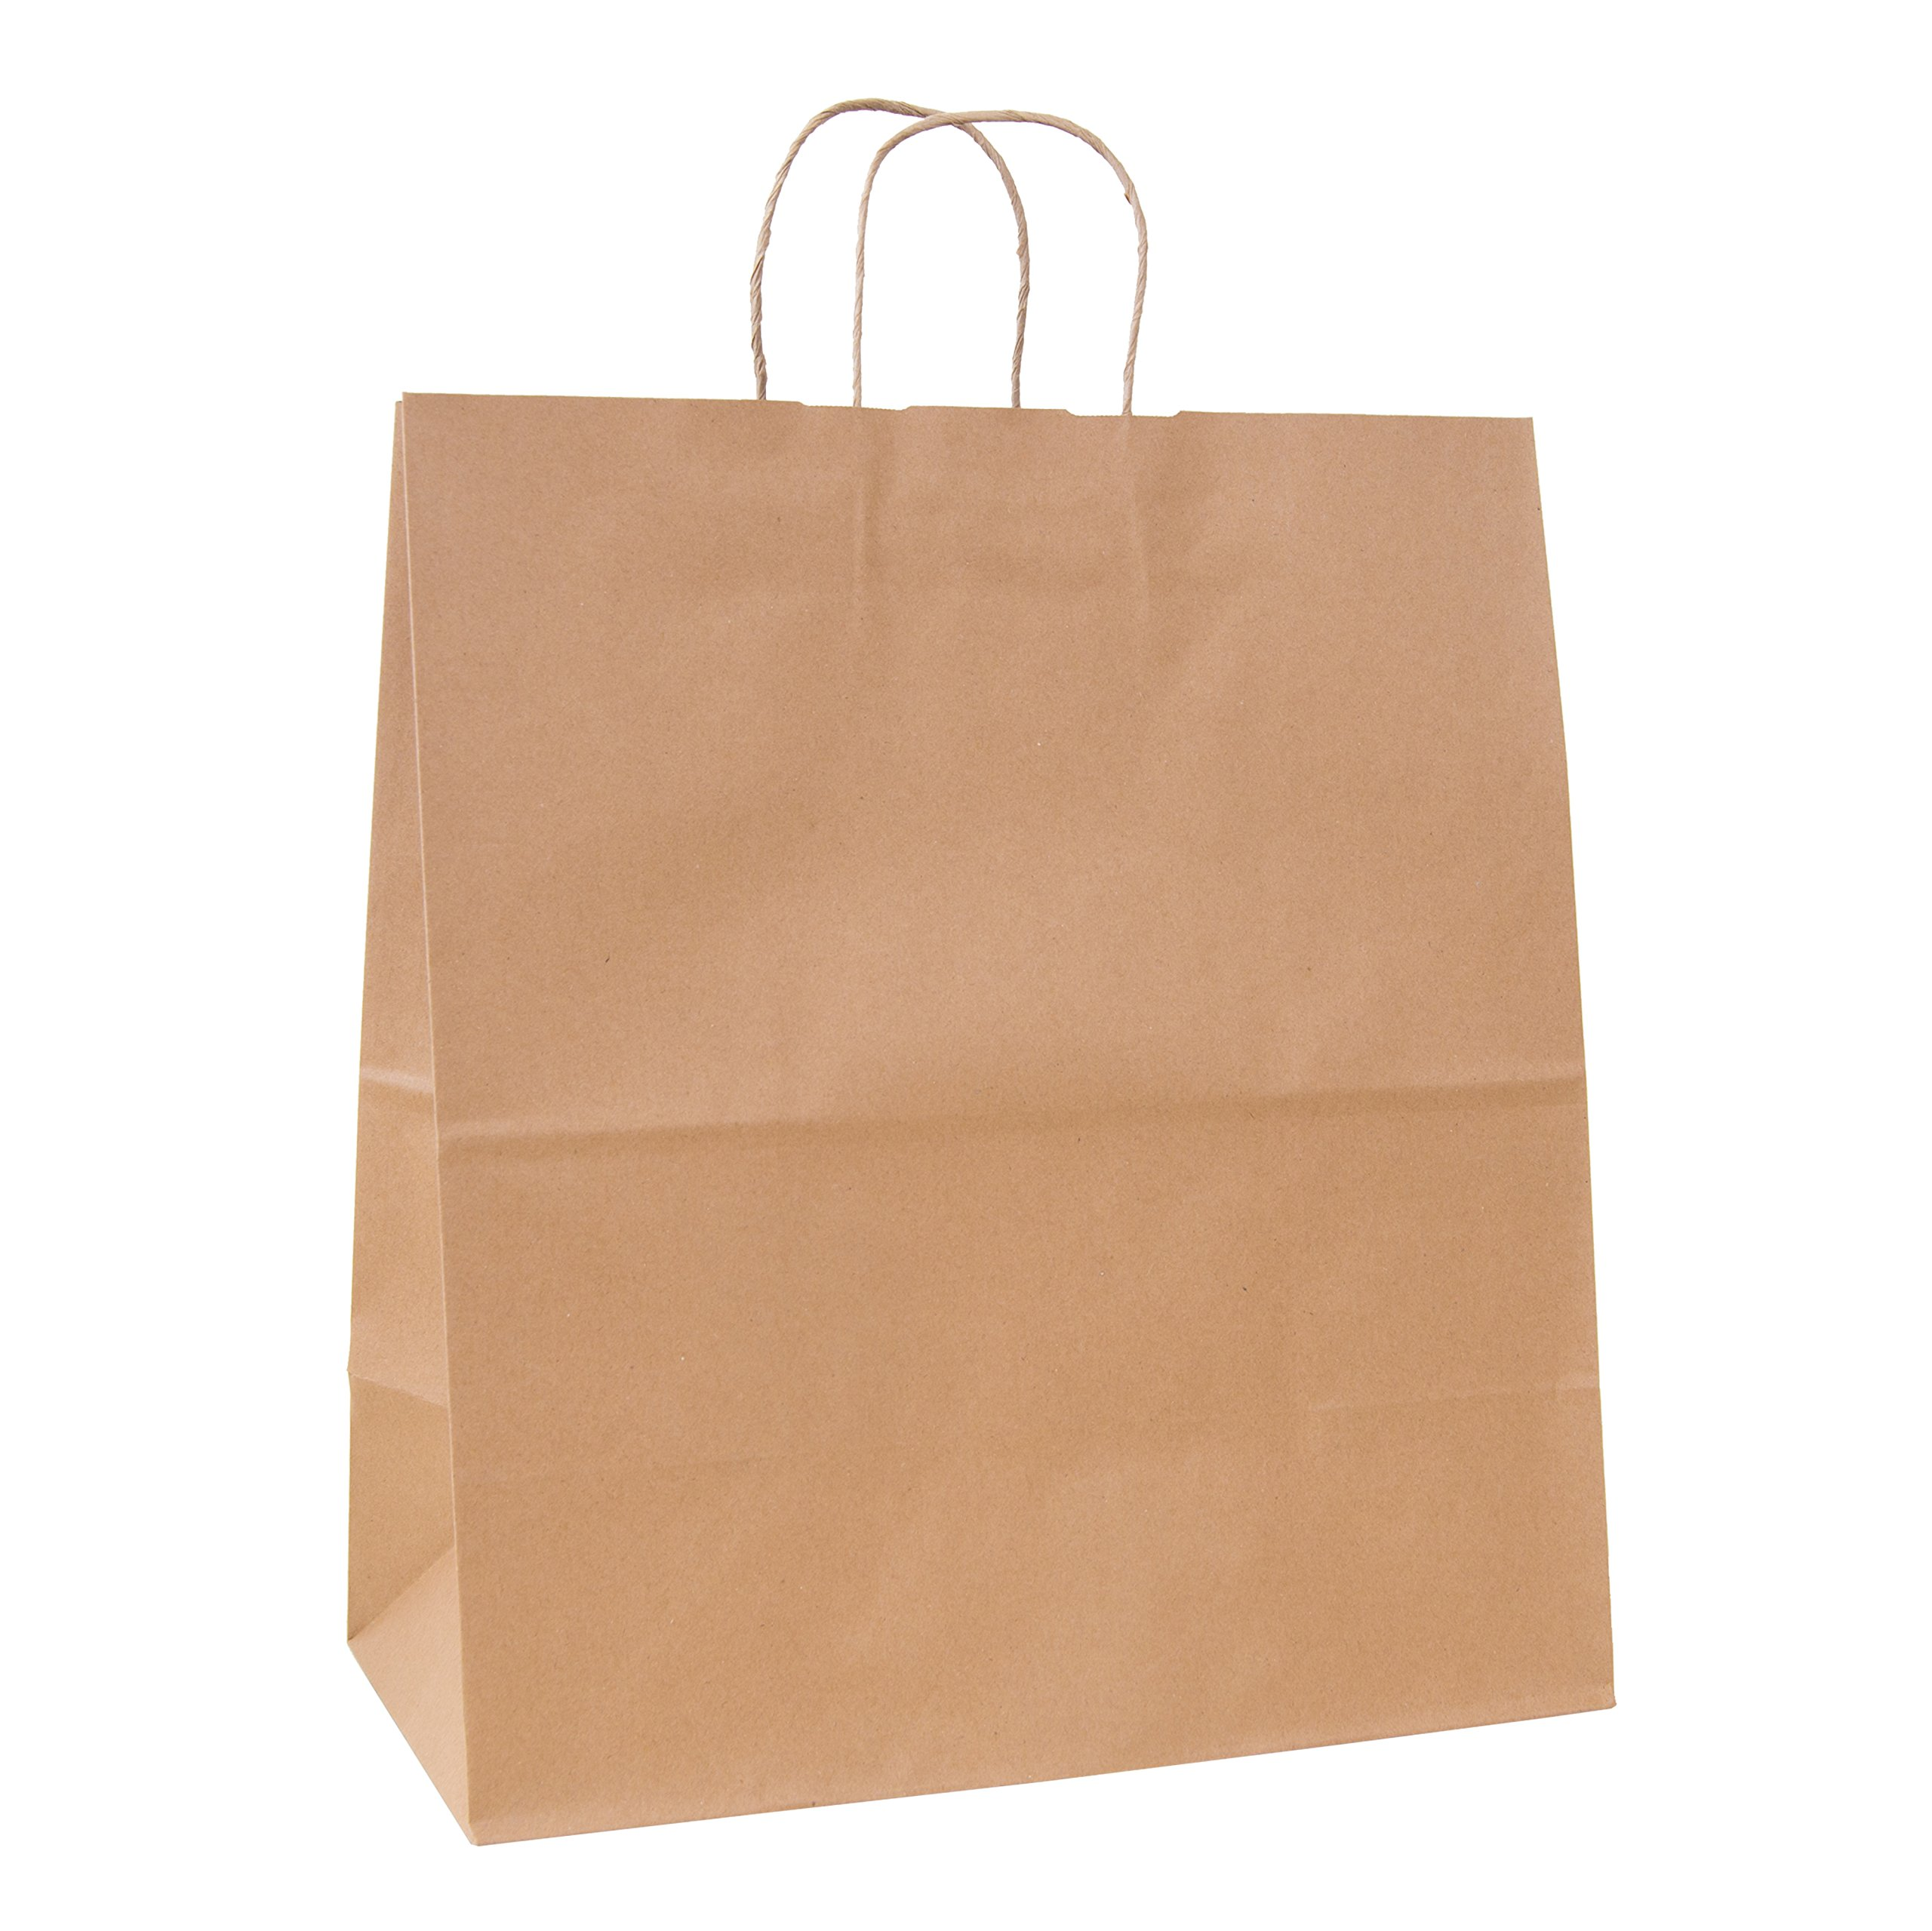 Incredible Packaging - 18'' x 7'' x 18'' Jumbo Kraft Paper Bags with Handles for Shopping, Retail and Merchandise. Strong and Reusable - 80 Paper Thickness- 100% Recycled (120, Brown) by Incredible Packaging (Image #2)